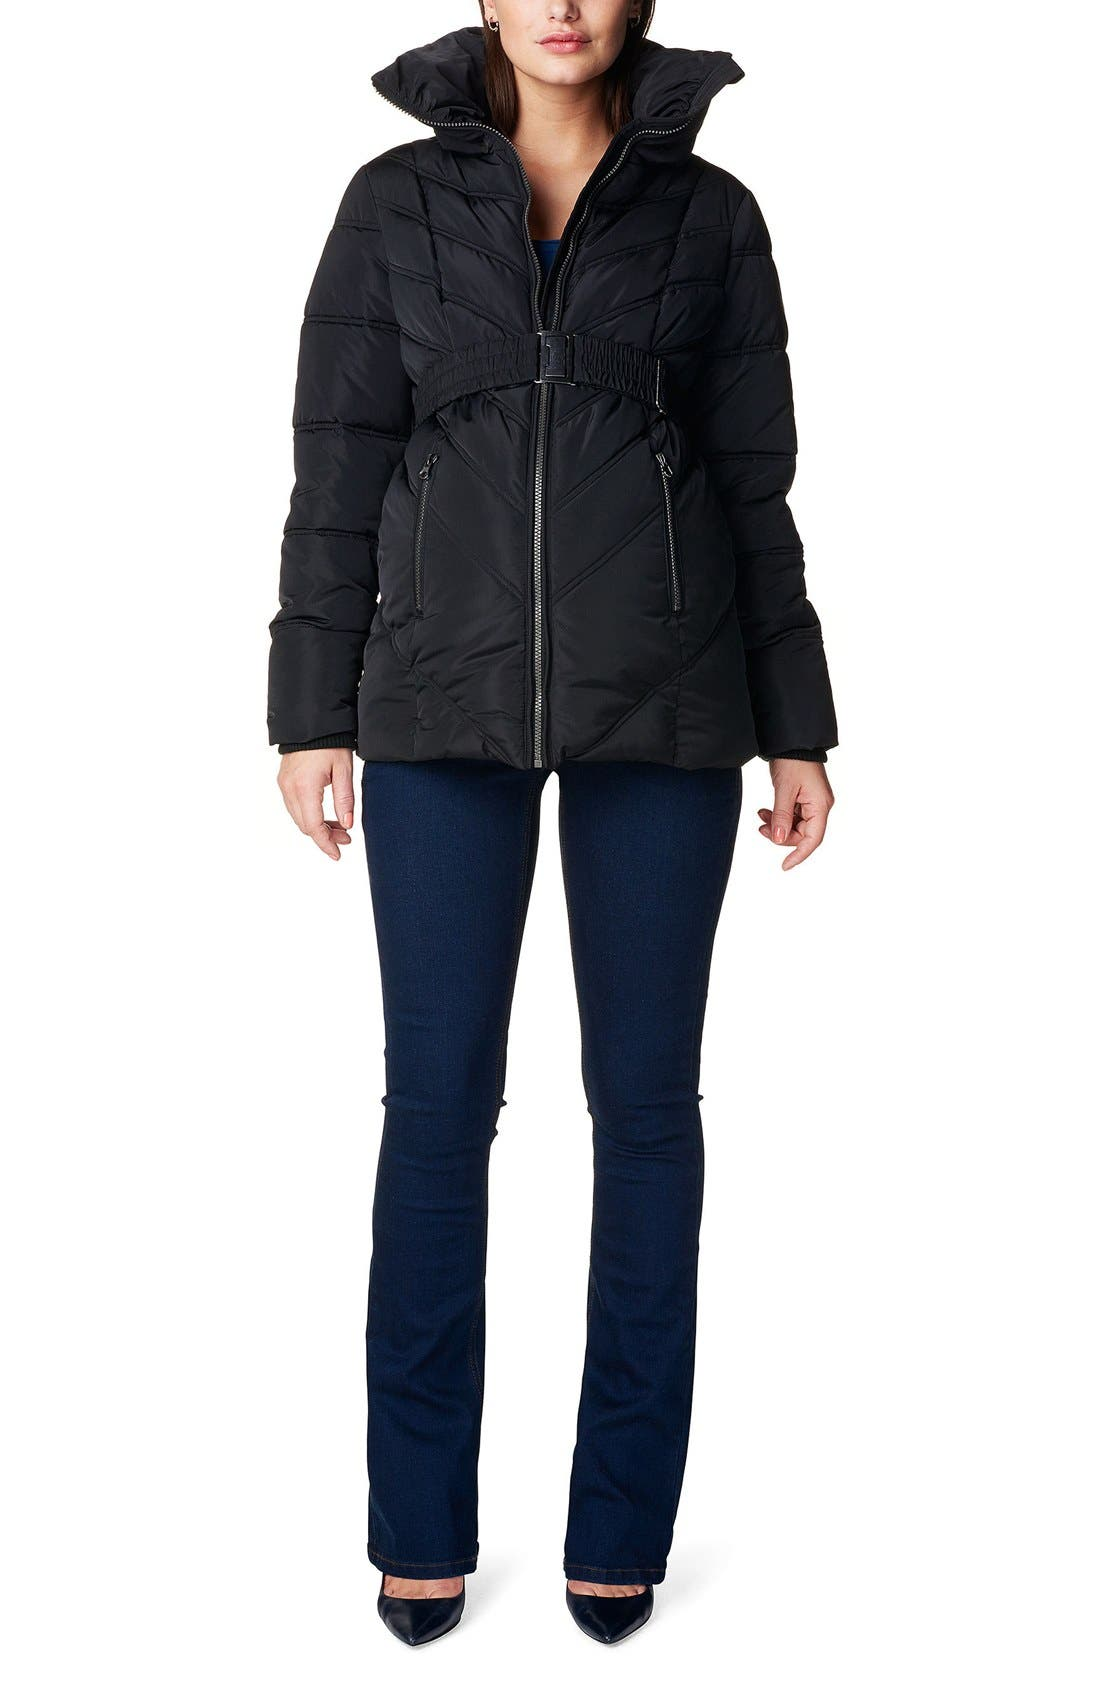 Alternate Image 1 Selected - Noppies 'Lene' Quilted Maternity Jacket